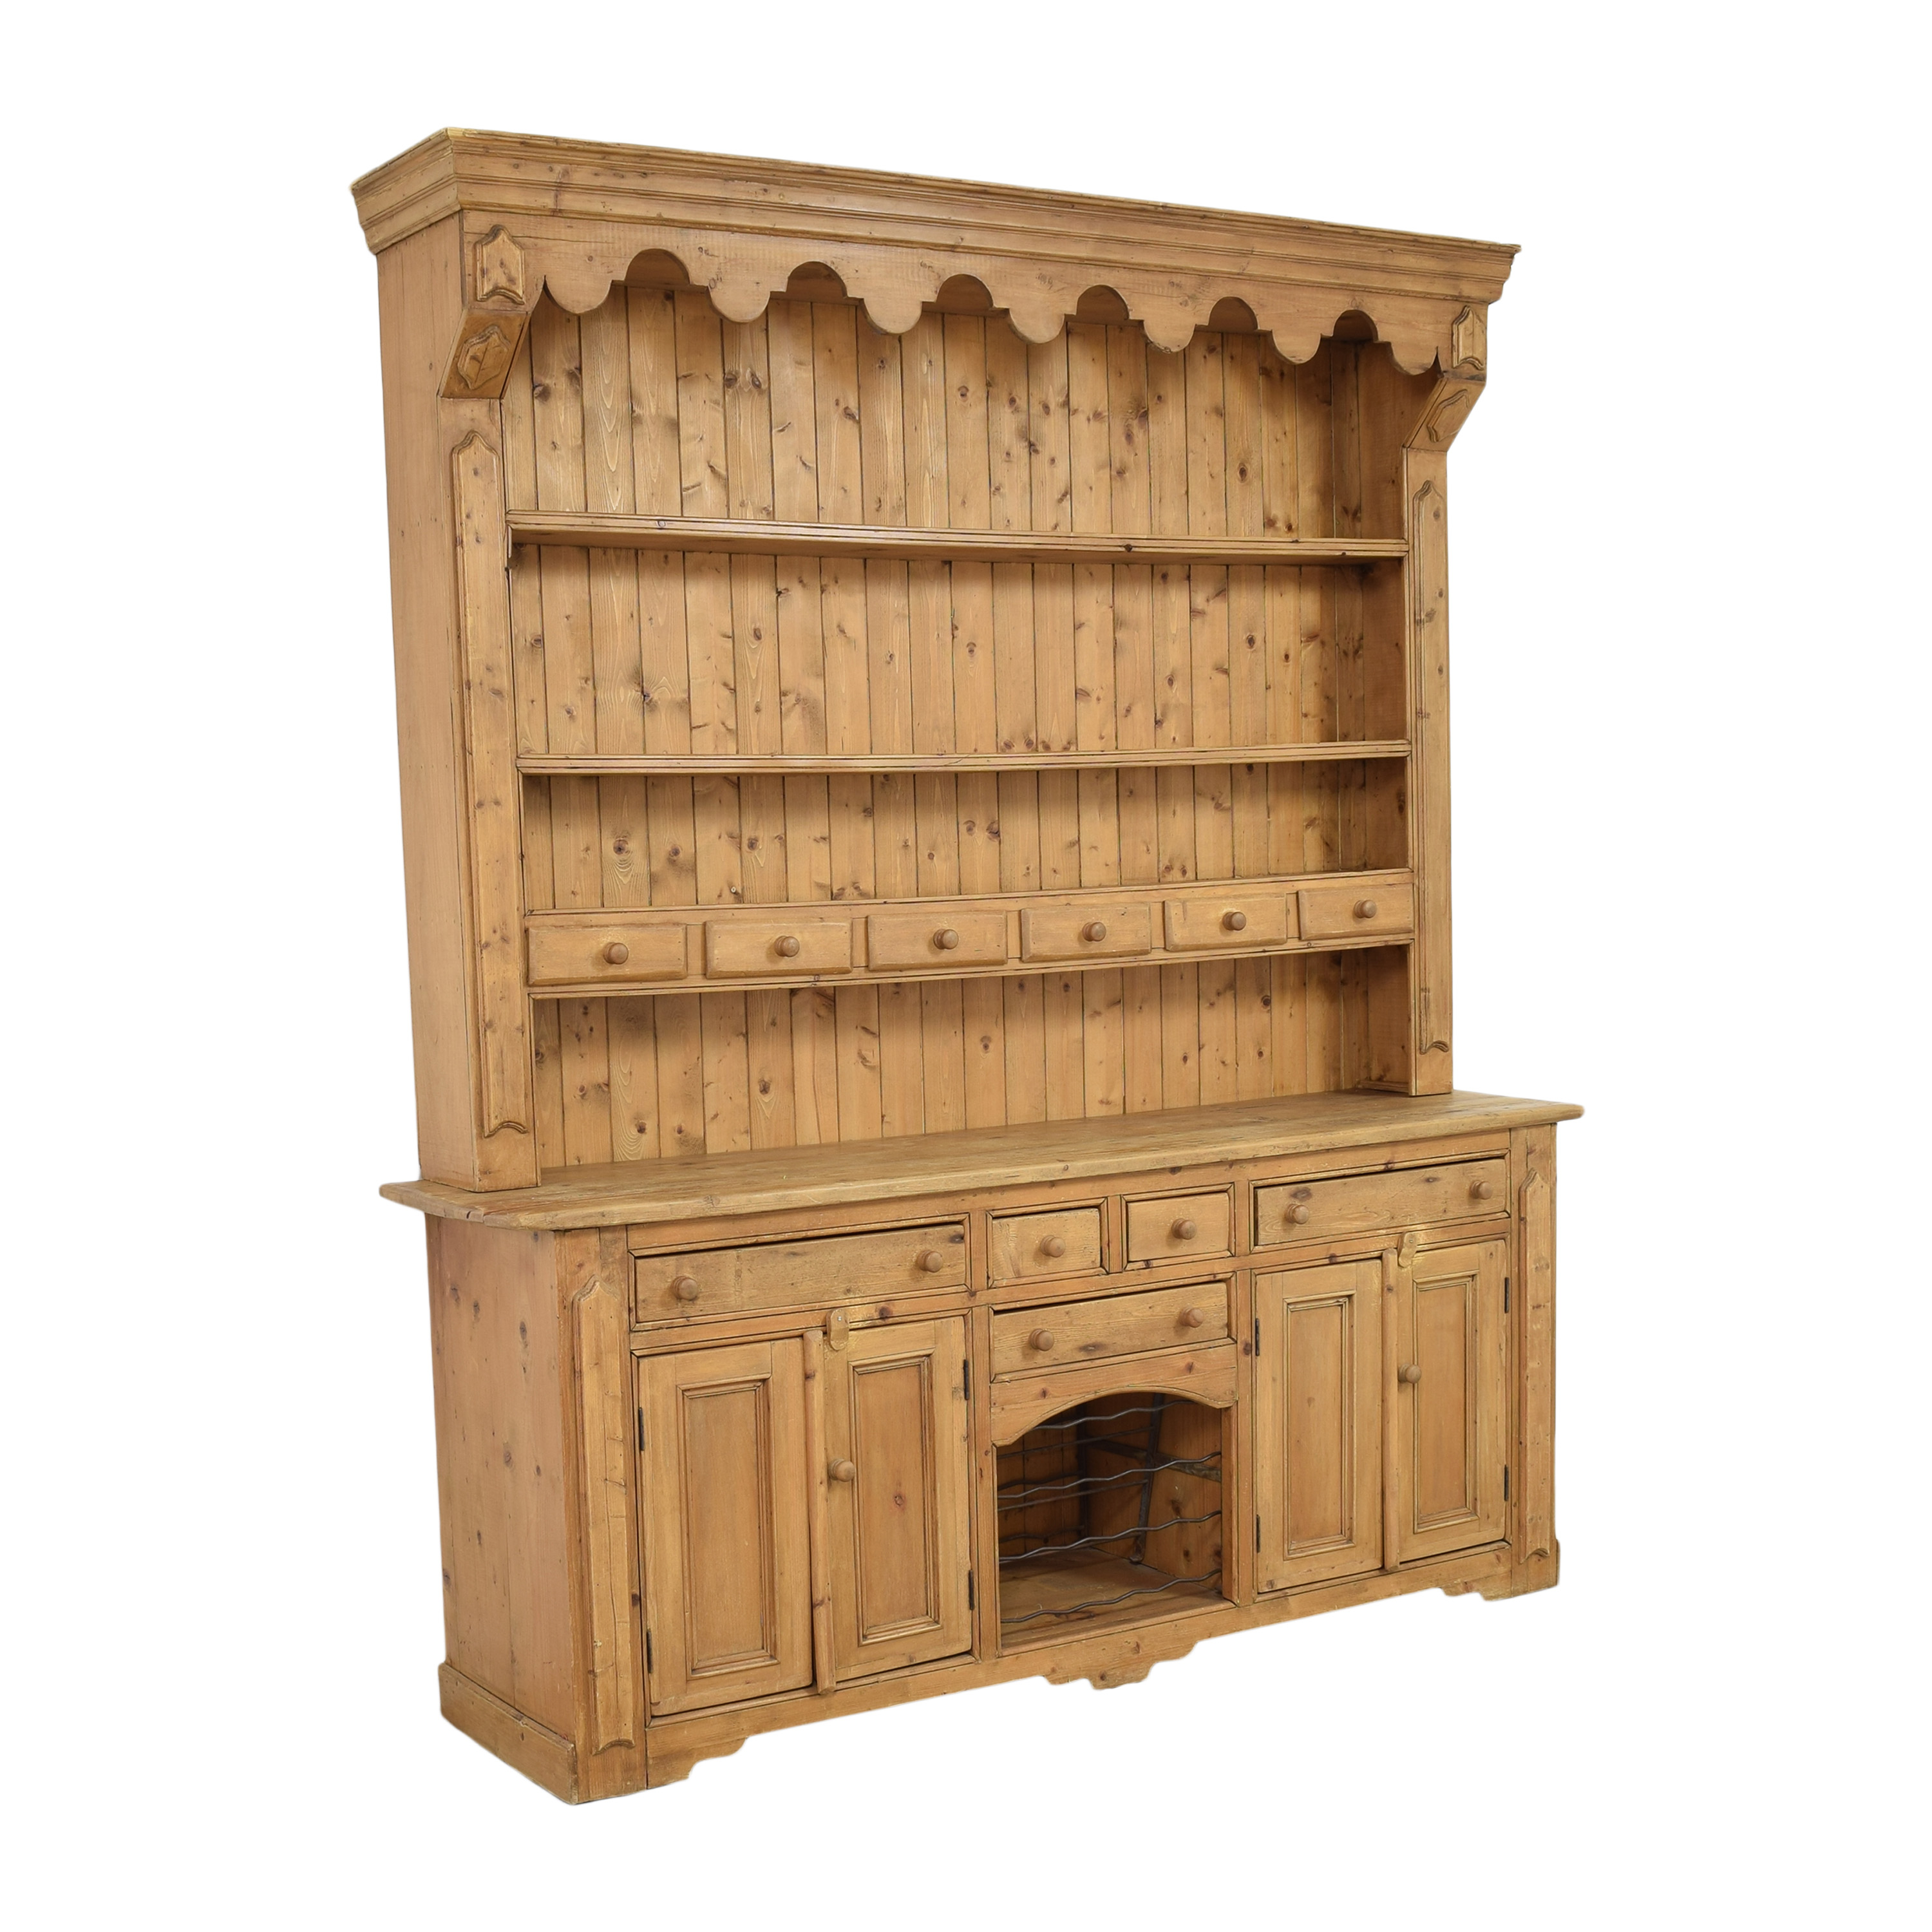 shop ABC Carpet & Home Sideboard with Hutch ABC Carpet & Home Storage